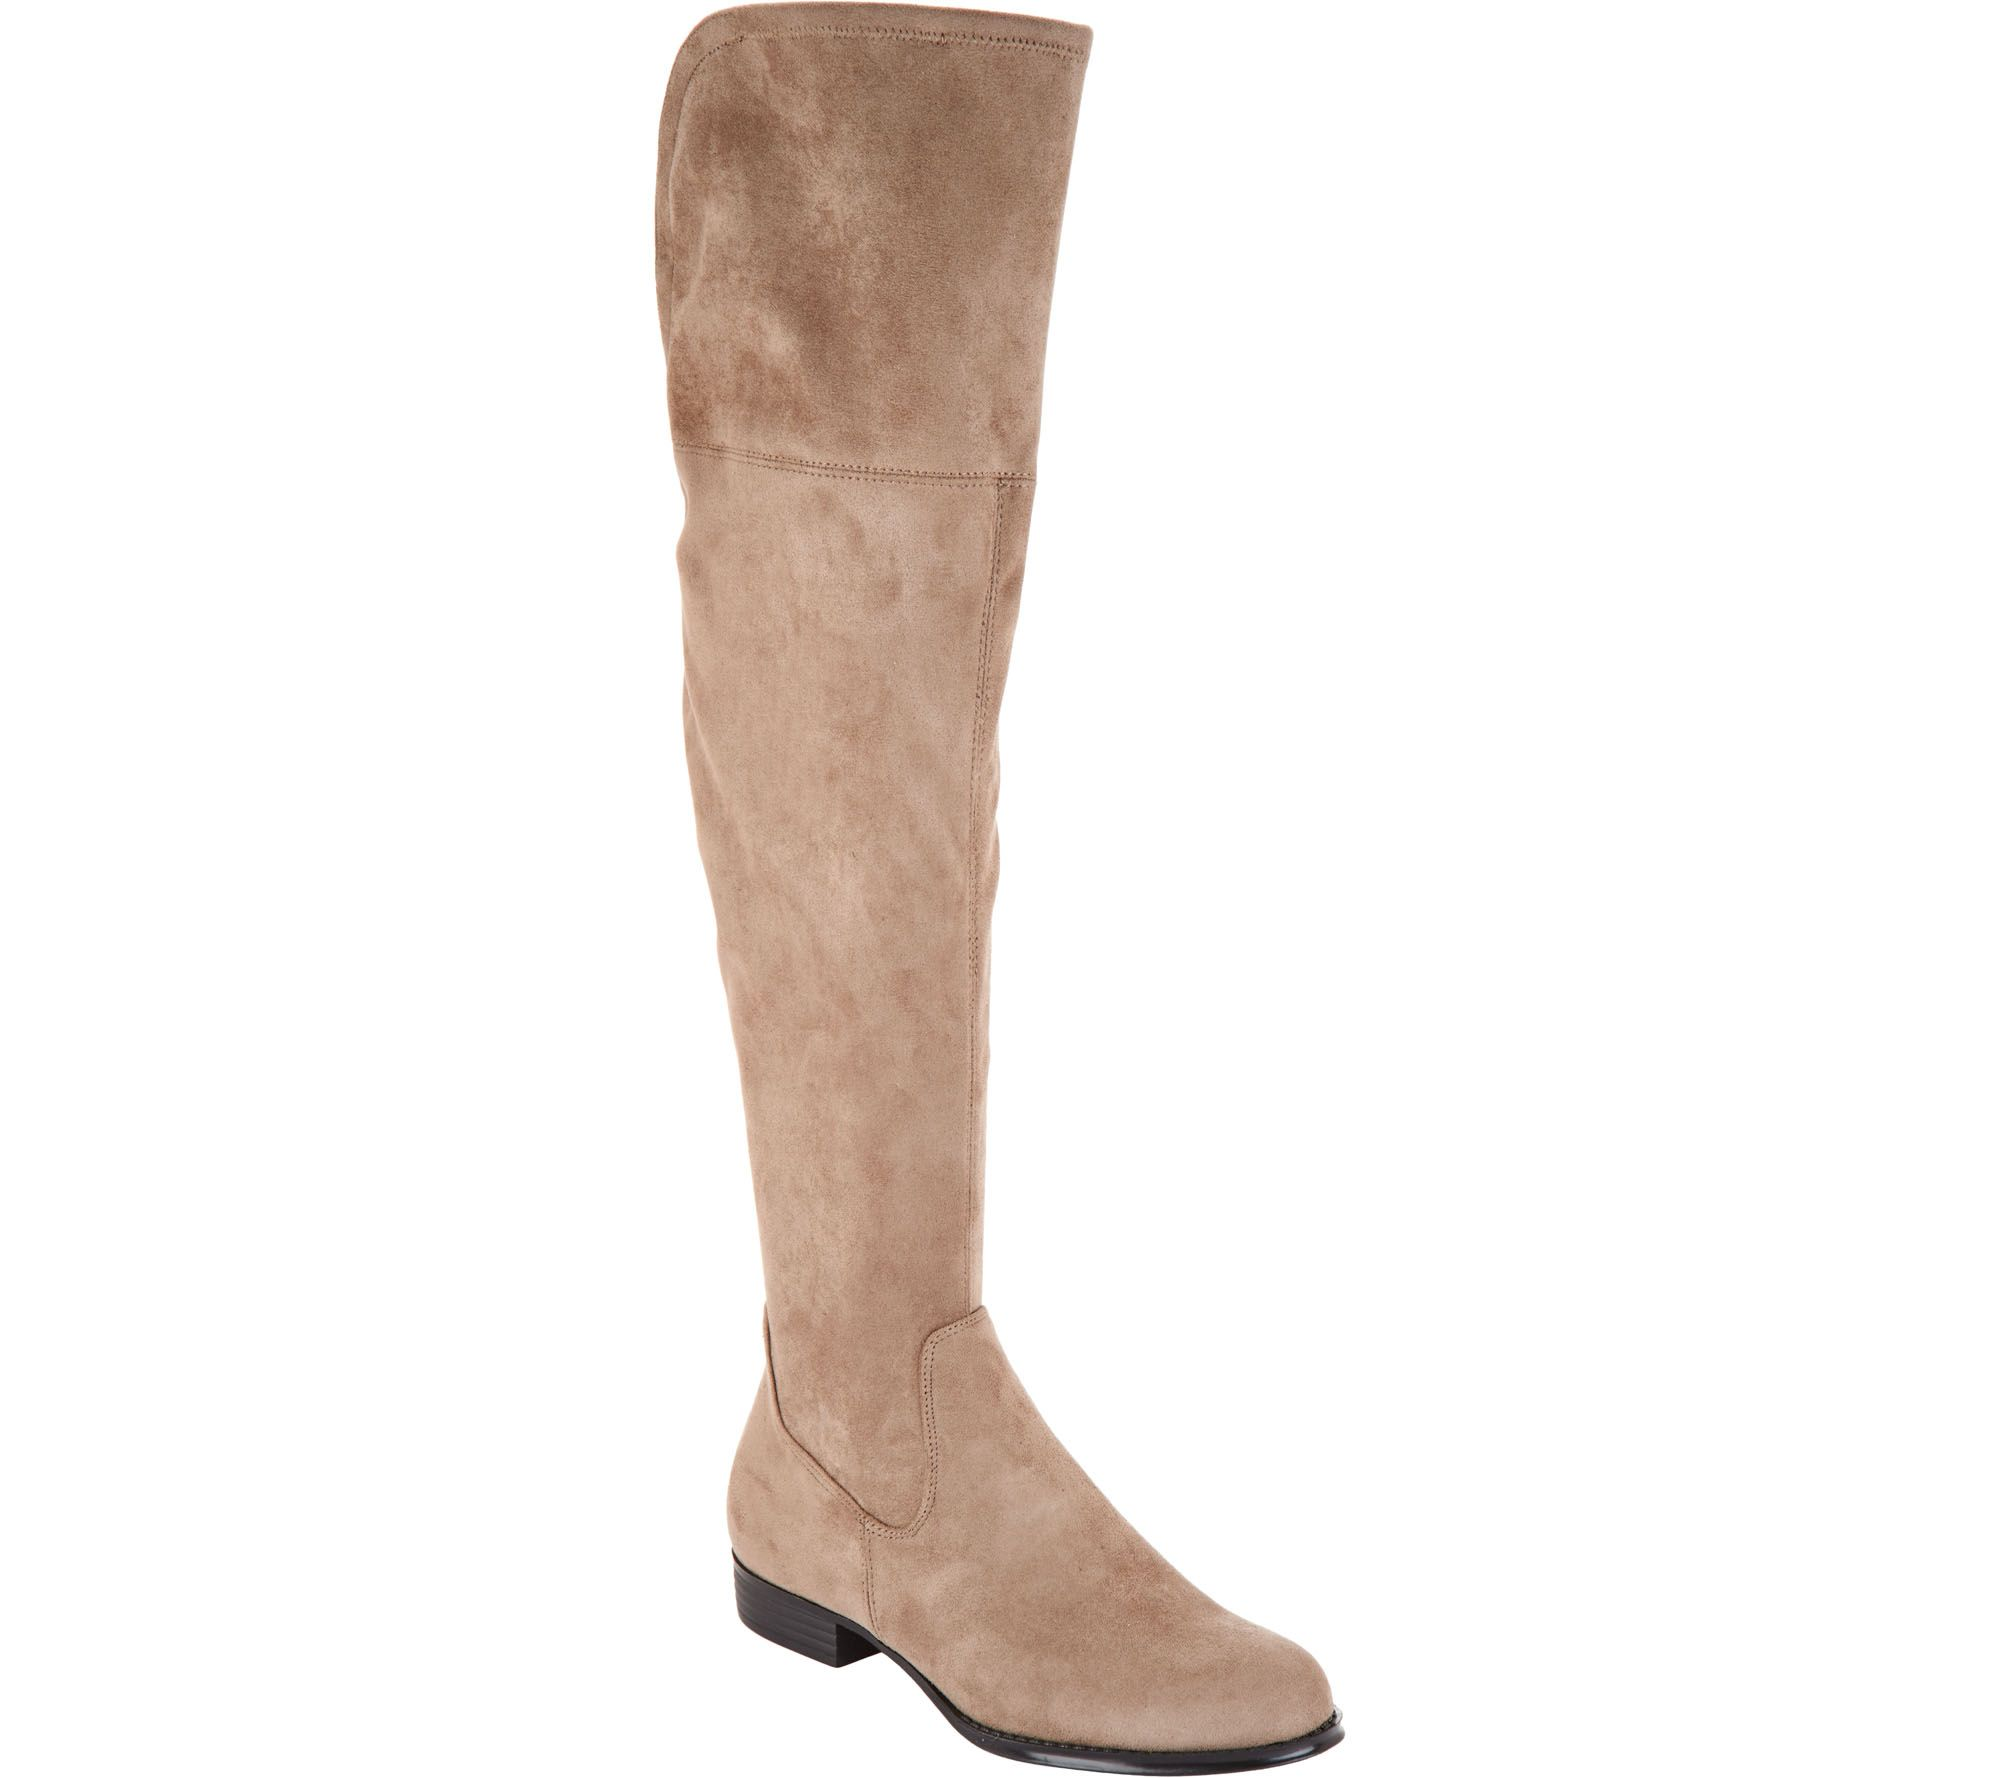 c266ec5c02a Isaac Mizrahi Live! Faux Suede Over-the-Knee Boots - Page 1 — QVC.com